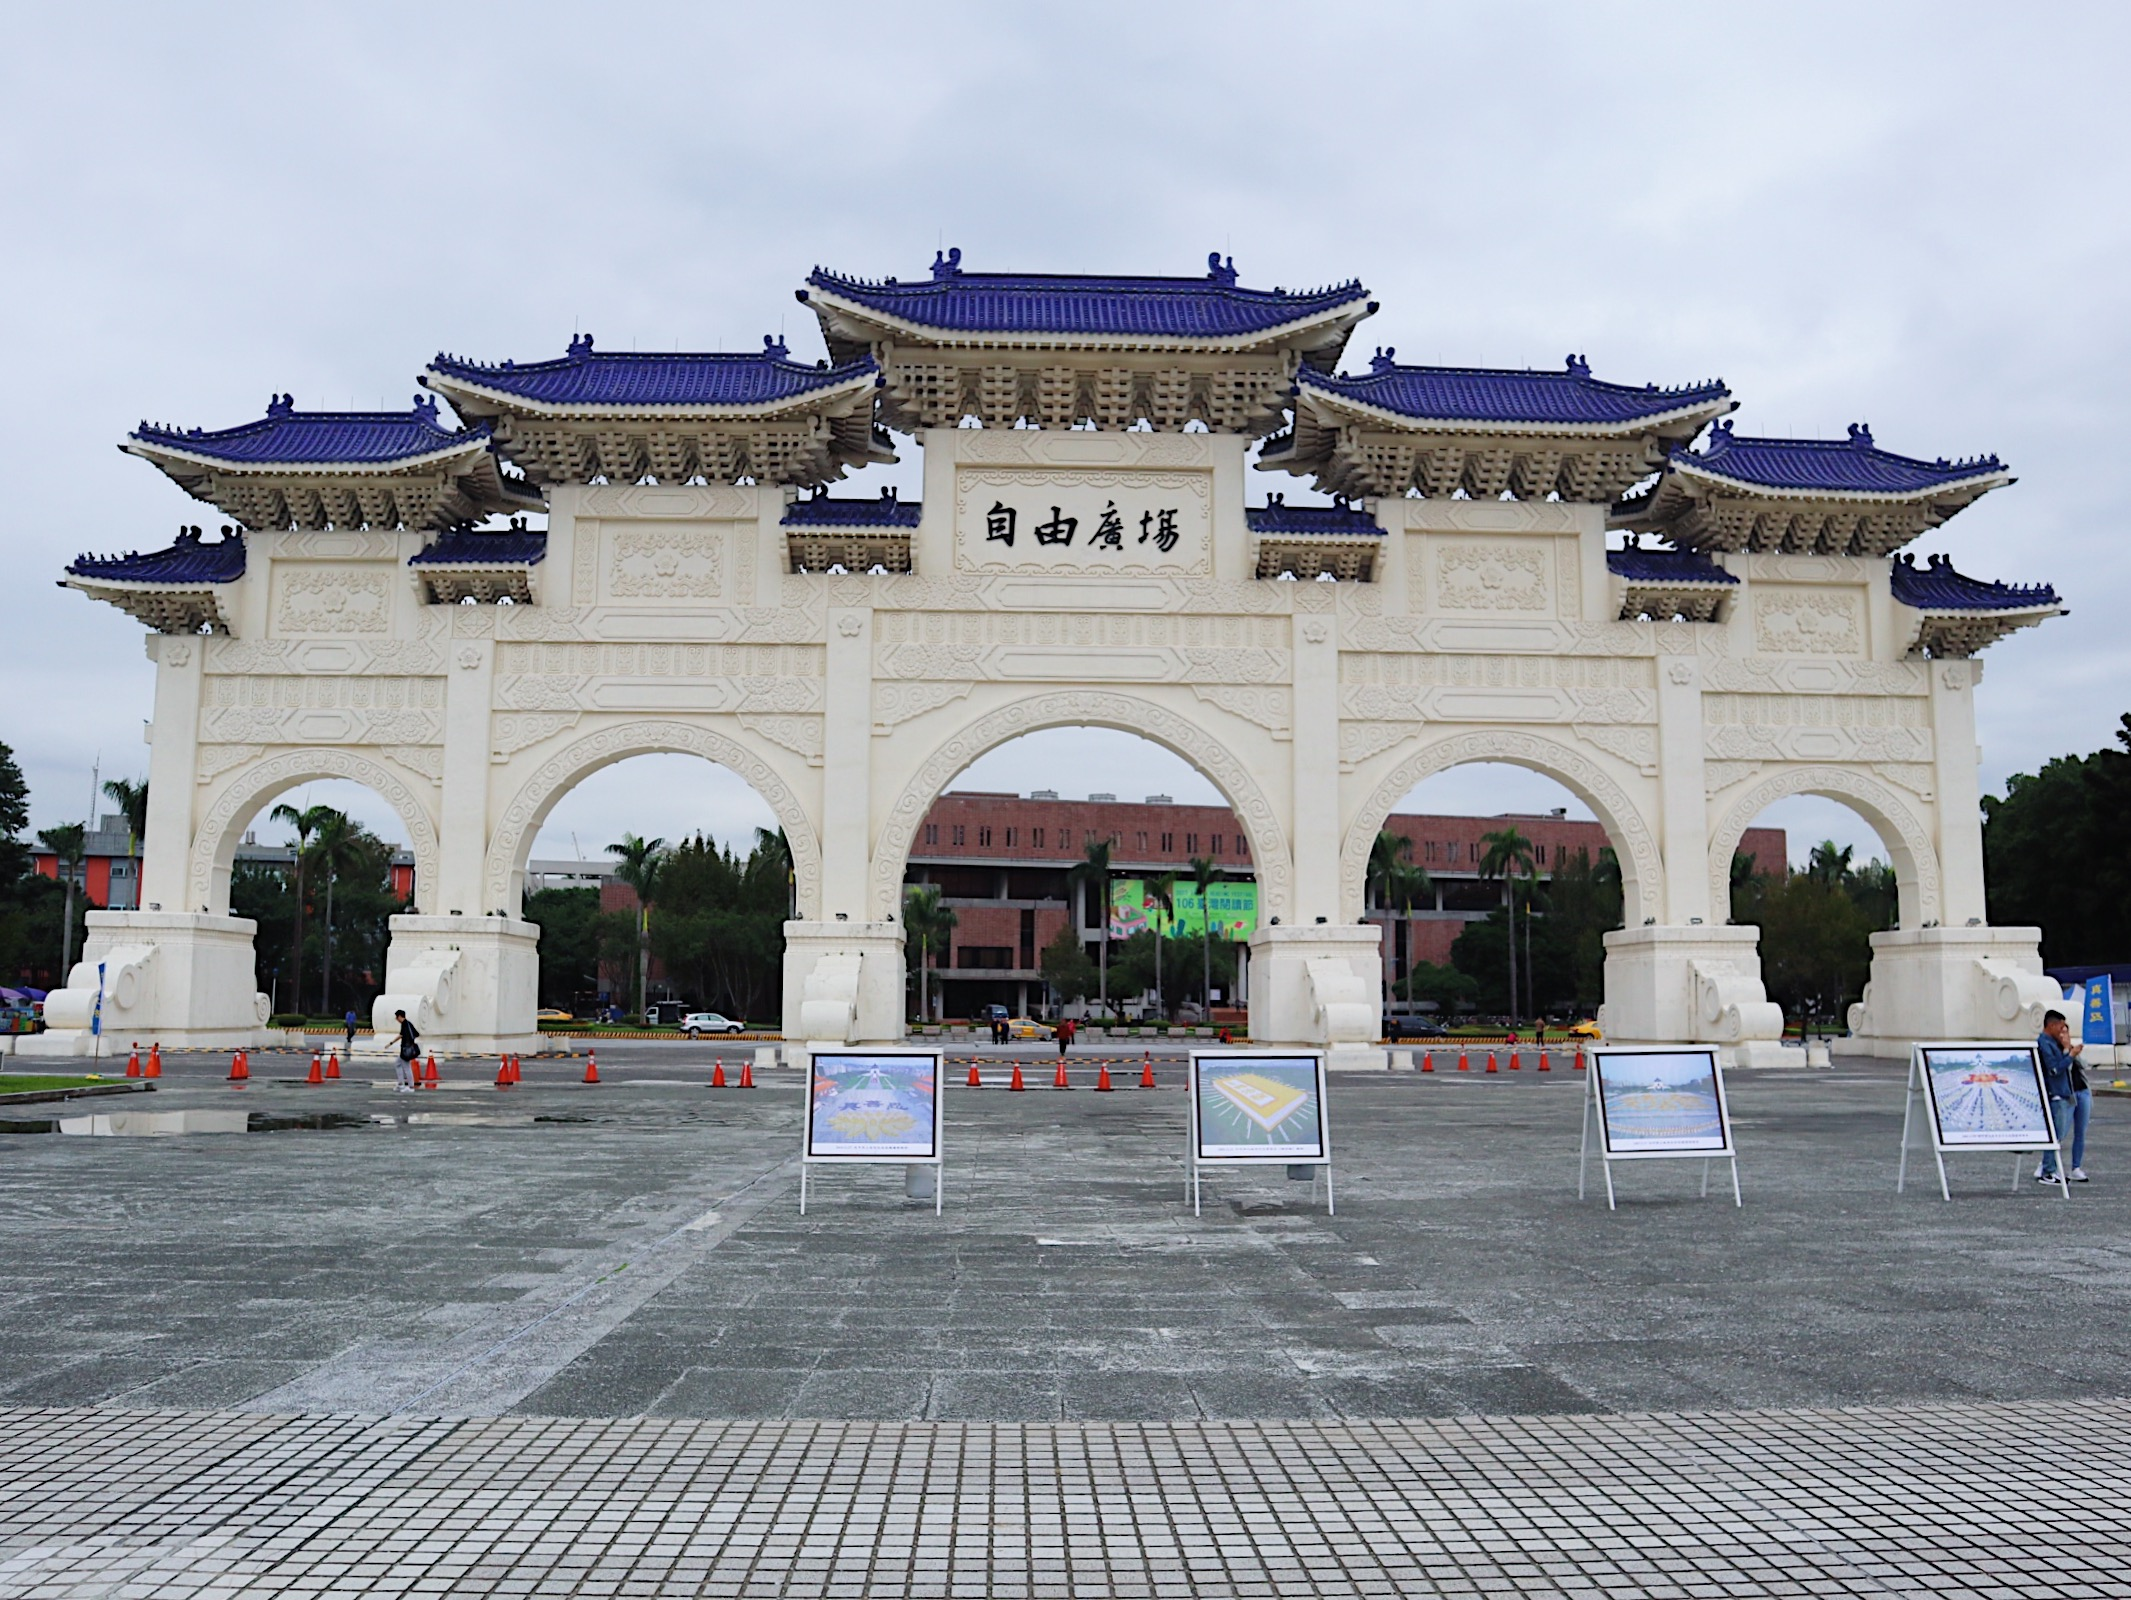 PAIFANG. This is Liberty Square's main gate.